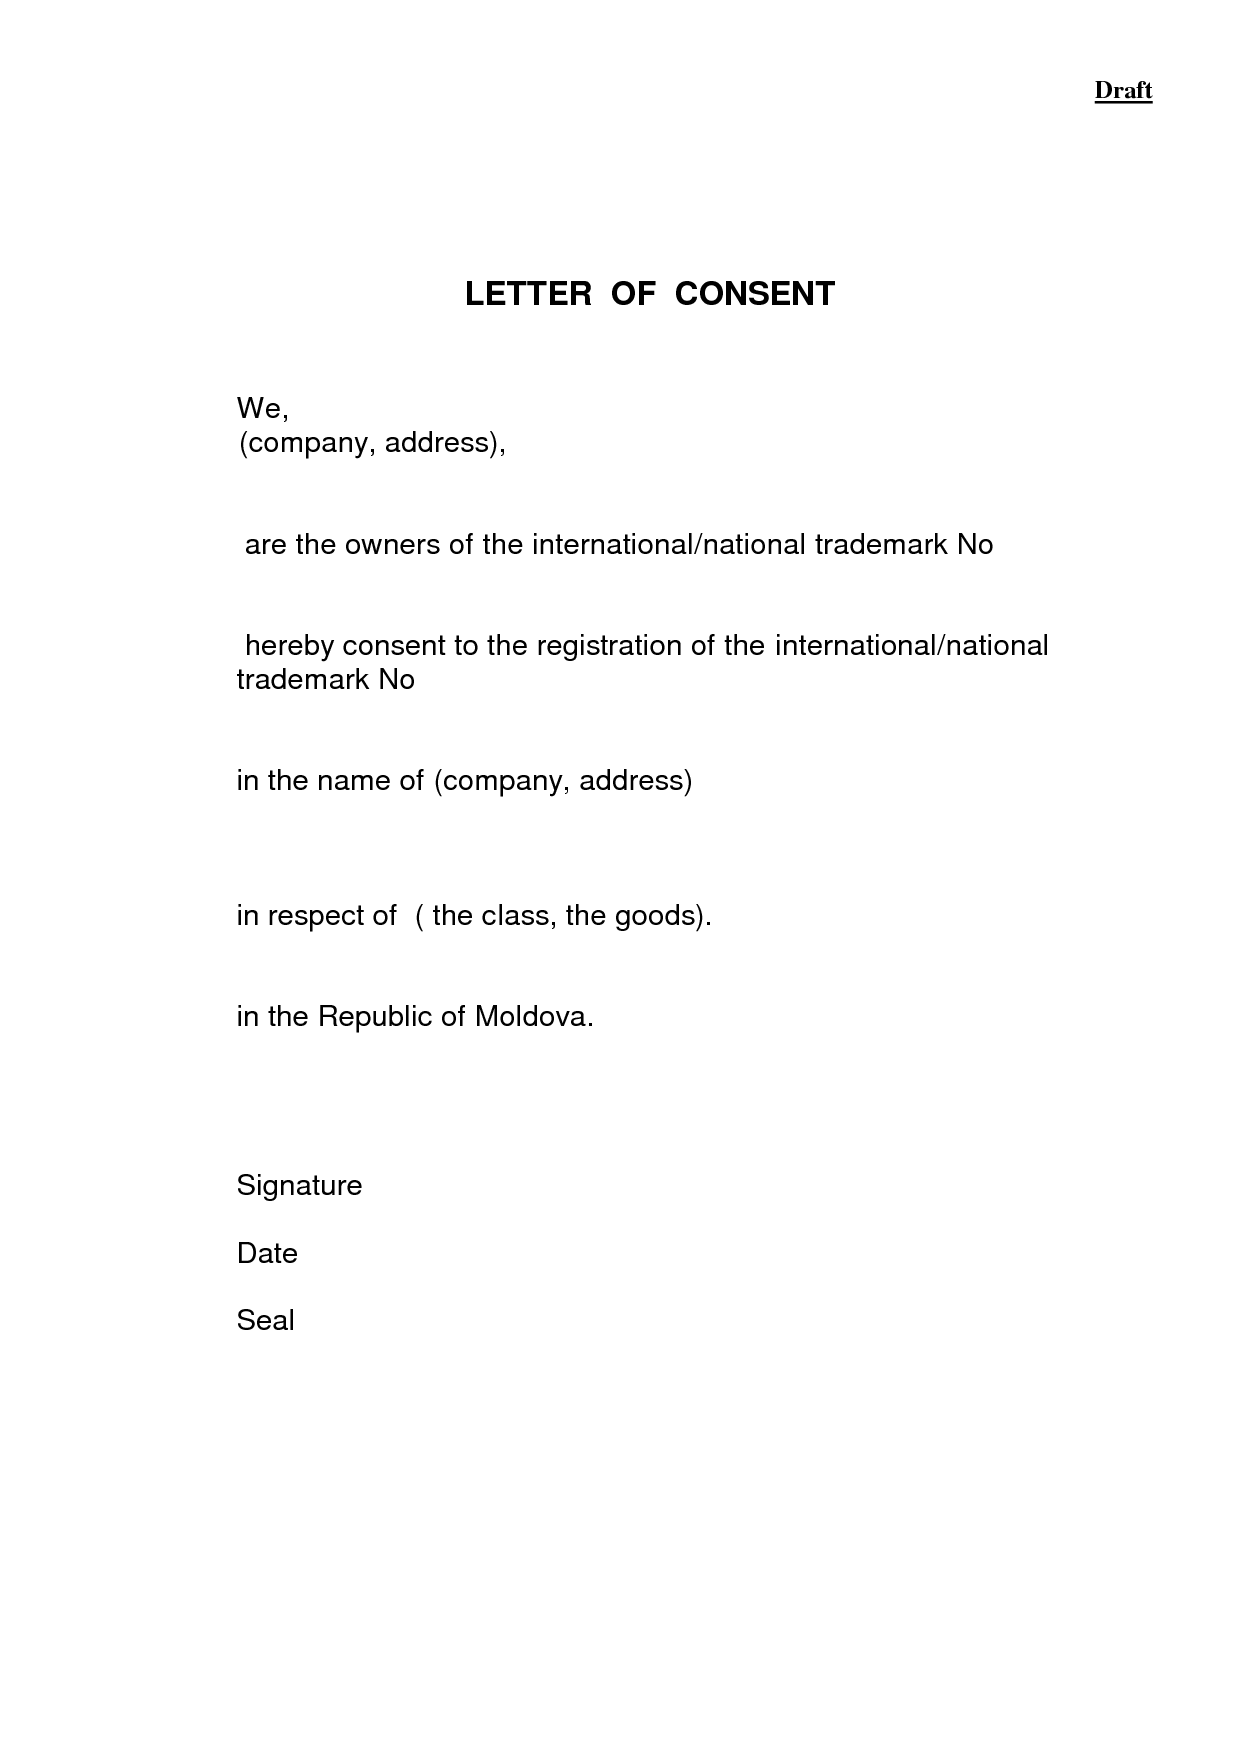 Consent letter format for vat registration permission photos format consent letter best template collection permission letterto whom this may concern are students from best free home design idea inspiration spiritdancerdesigns Images